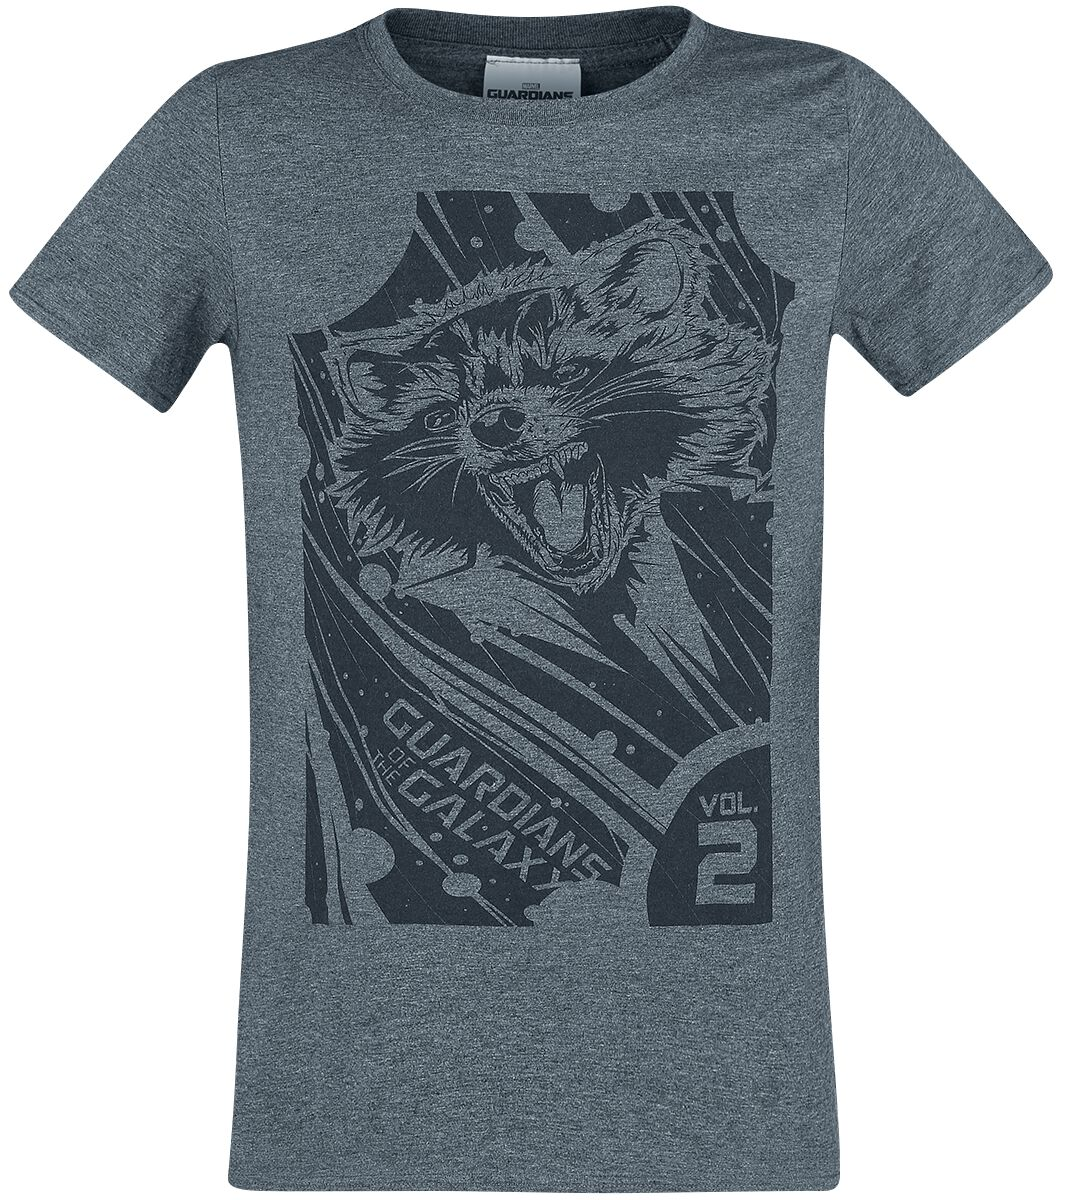 Image of   Guardians Of The Galaxy 2 - Geometric Rocket T-Shirt mørk grålig